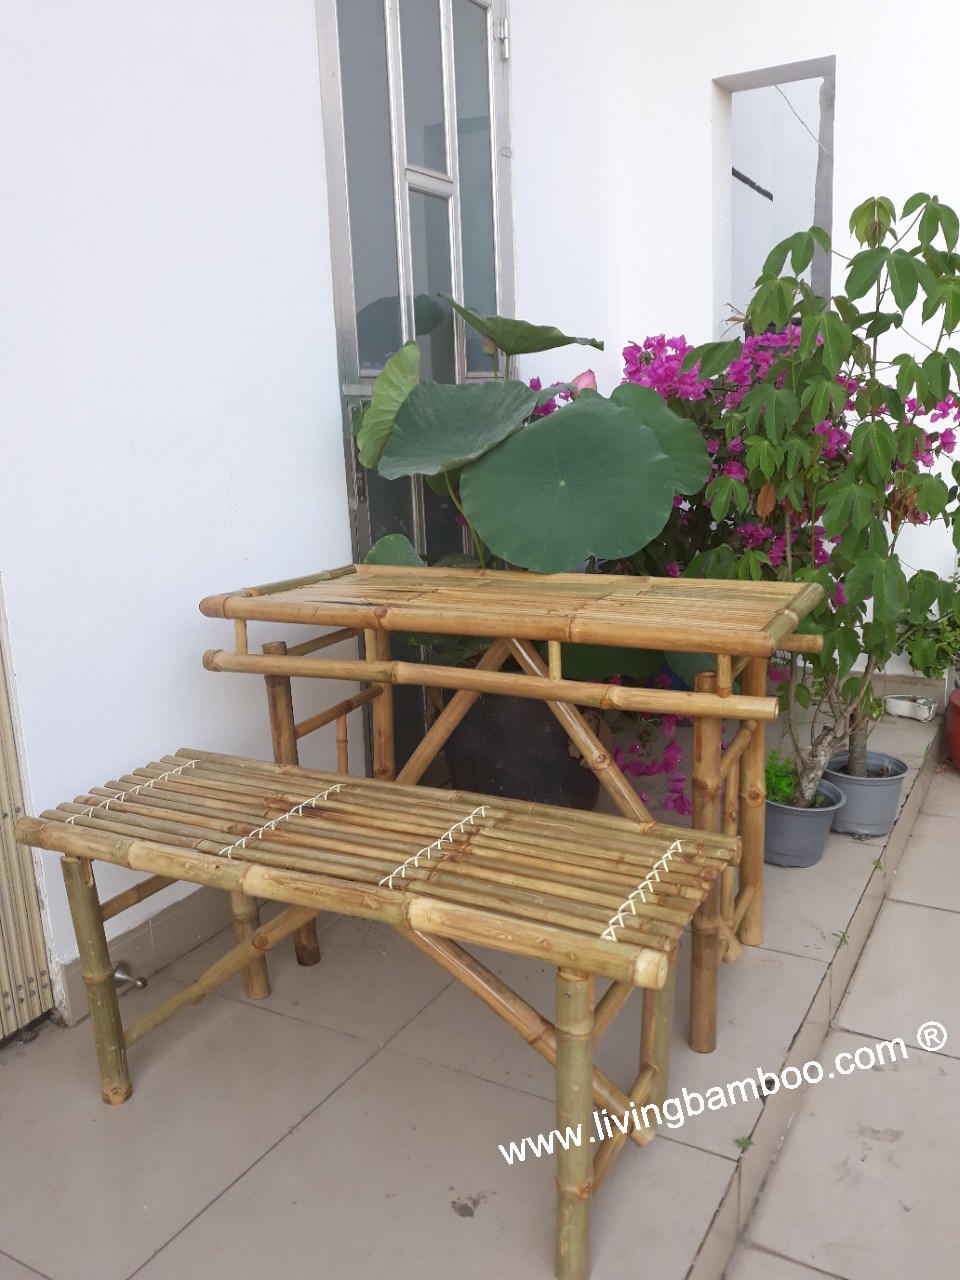 bamboo outdoor chairs monoblock chair covers for sale furniture bed garden table set 2